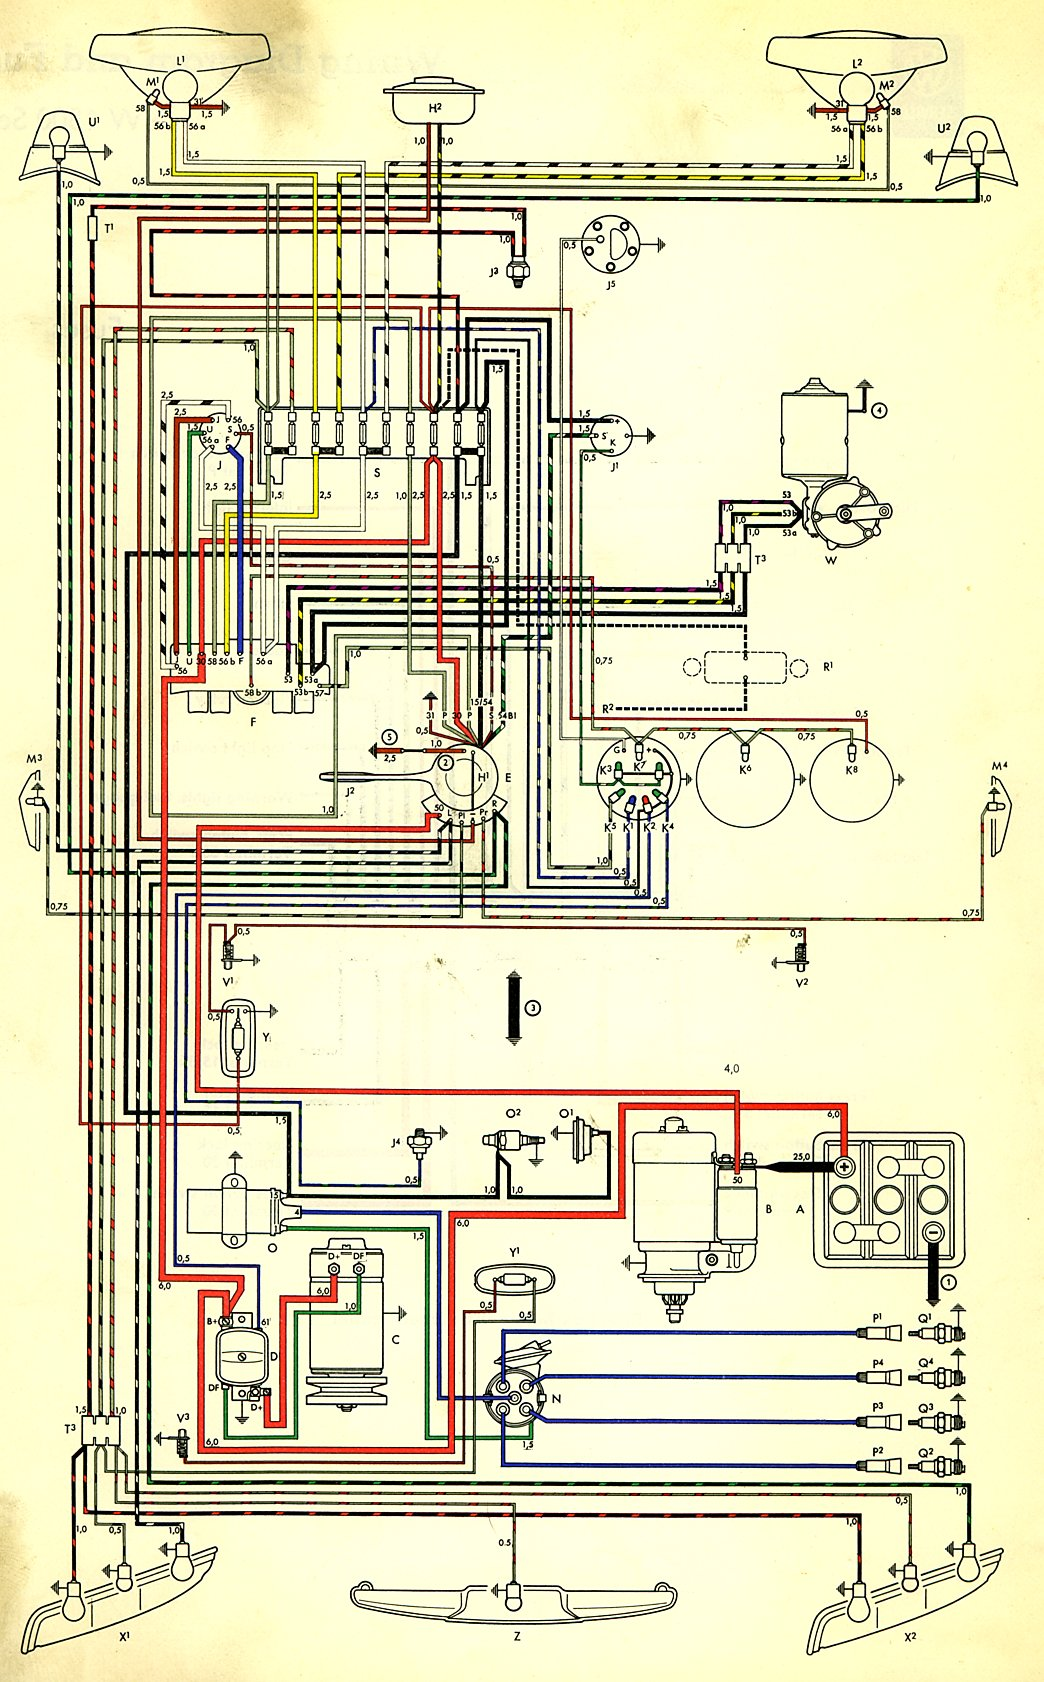 Type 3 Wiring Diagrams Club Car Ignition Switch Diagram Free Download